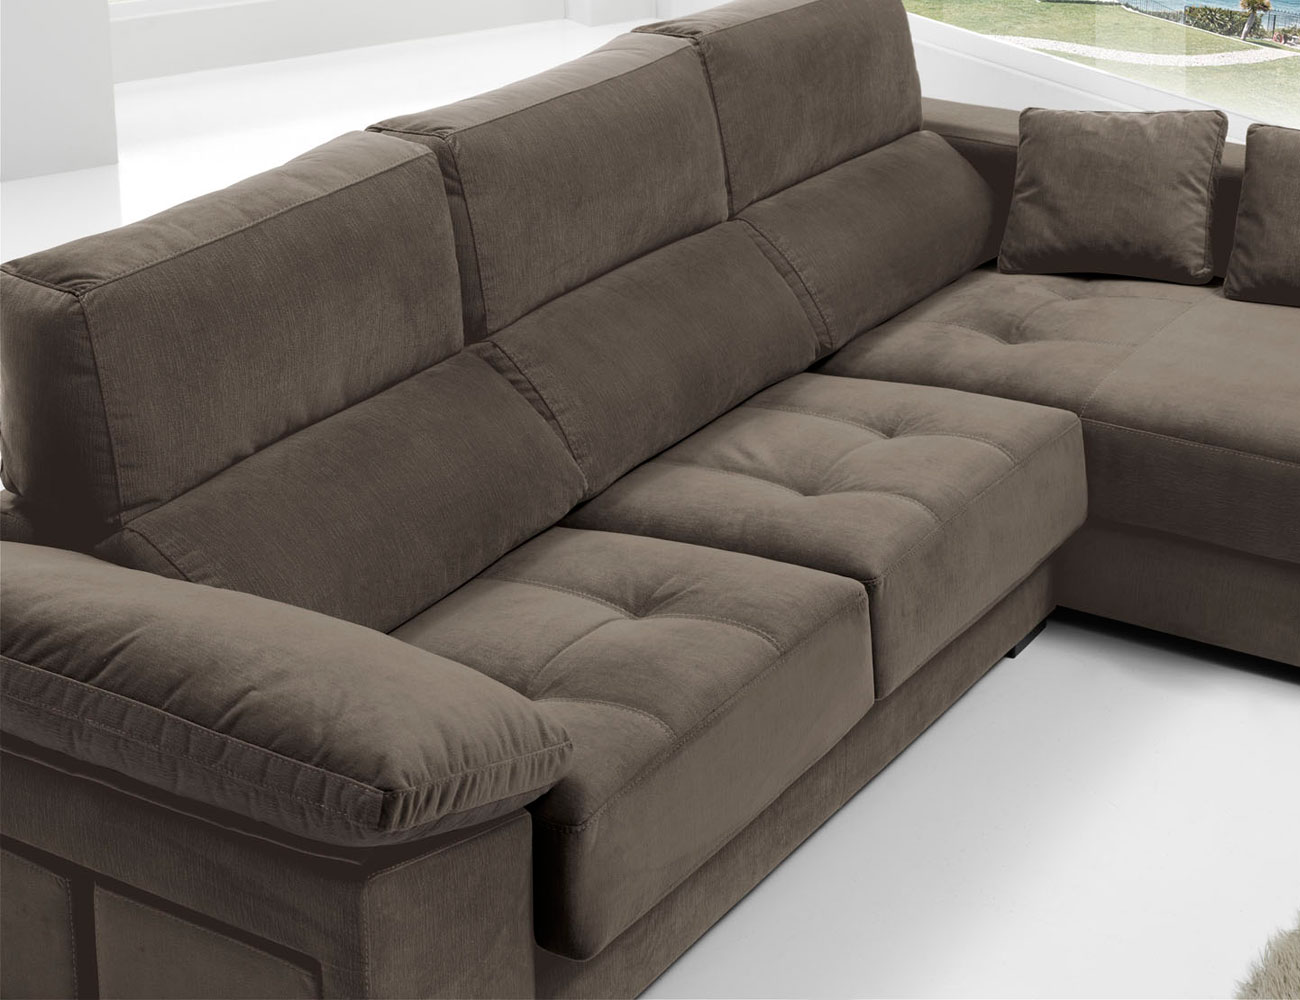 Sofa chaiselongue anti manchas bering pouf 282